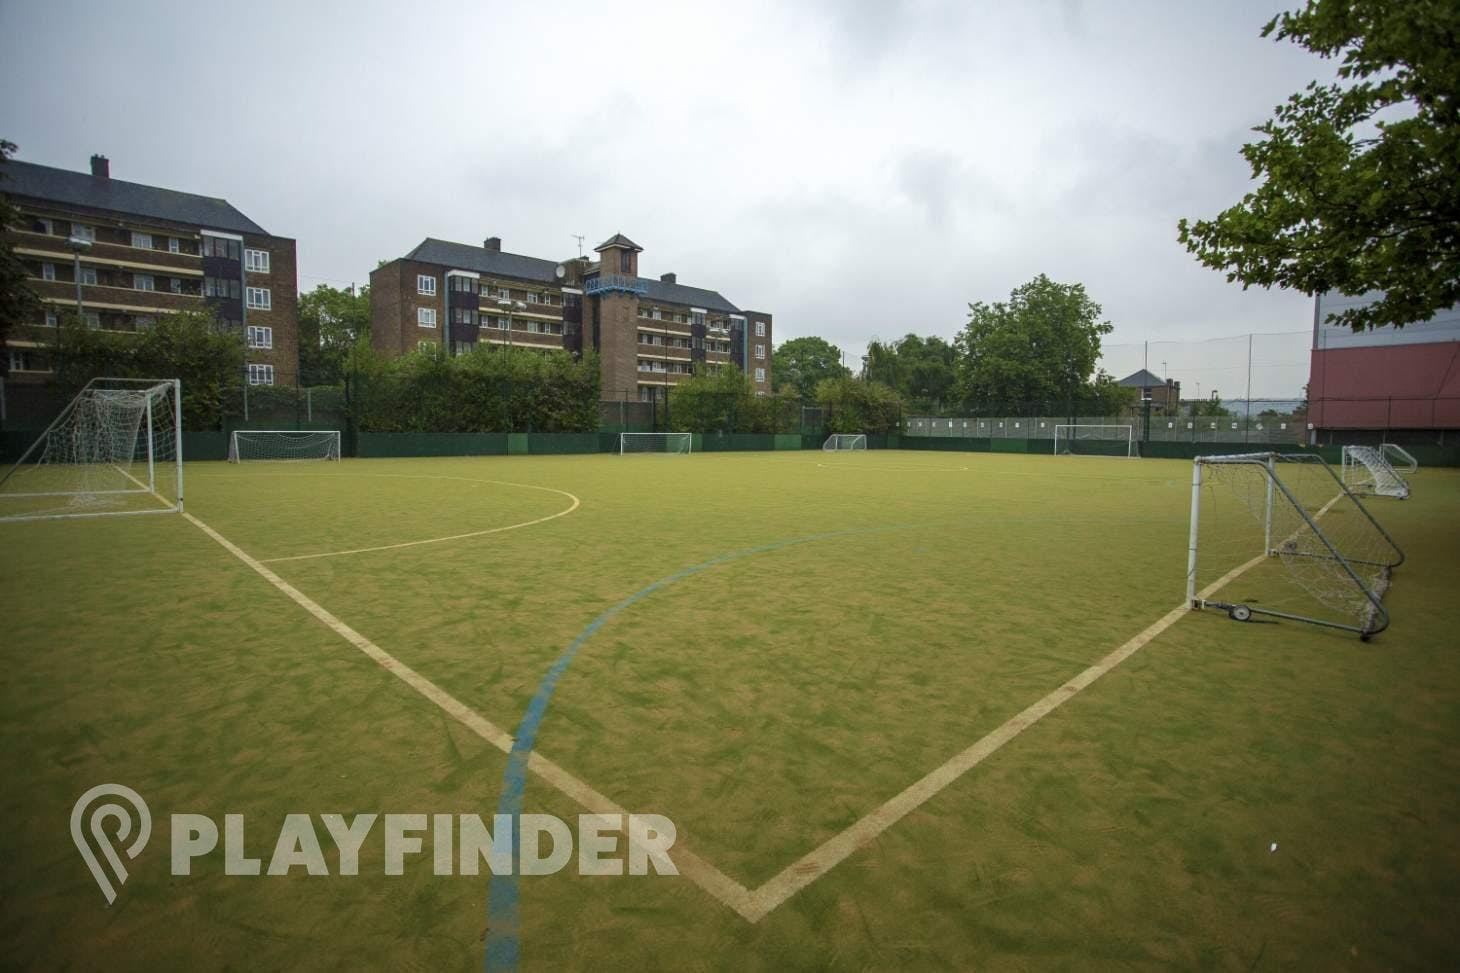 PlayFootball Holloway 5 a side | Astroturf football pitch